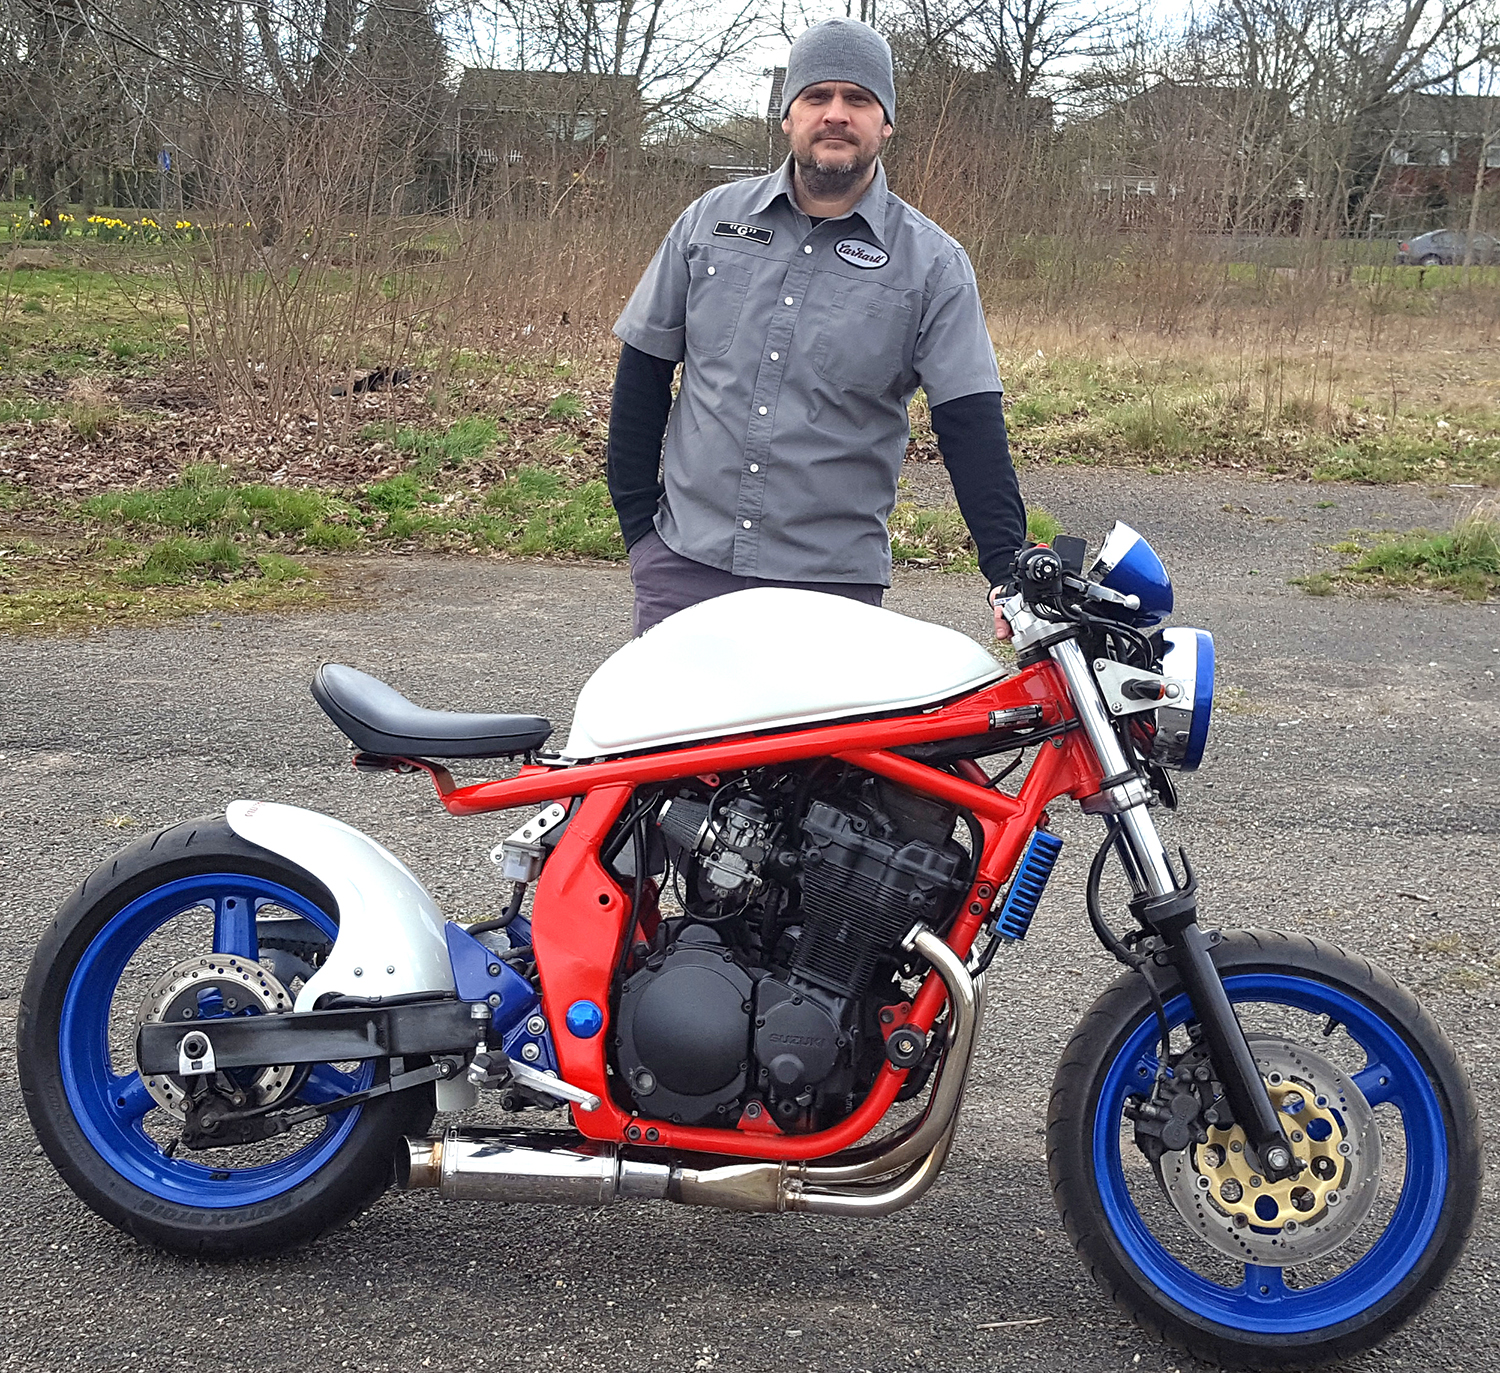 Newtonian Builds Bike for Charity